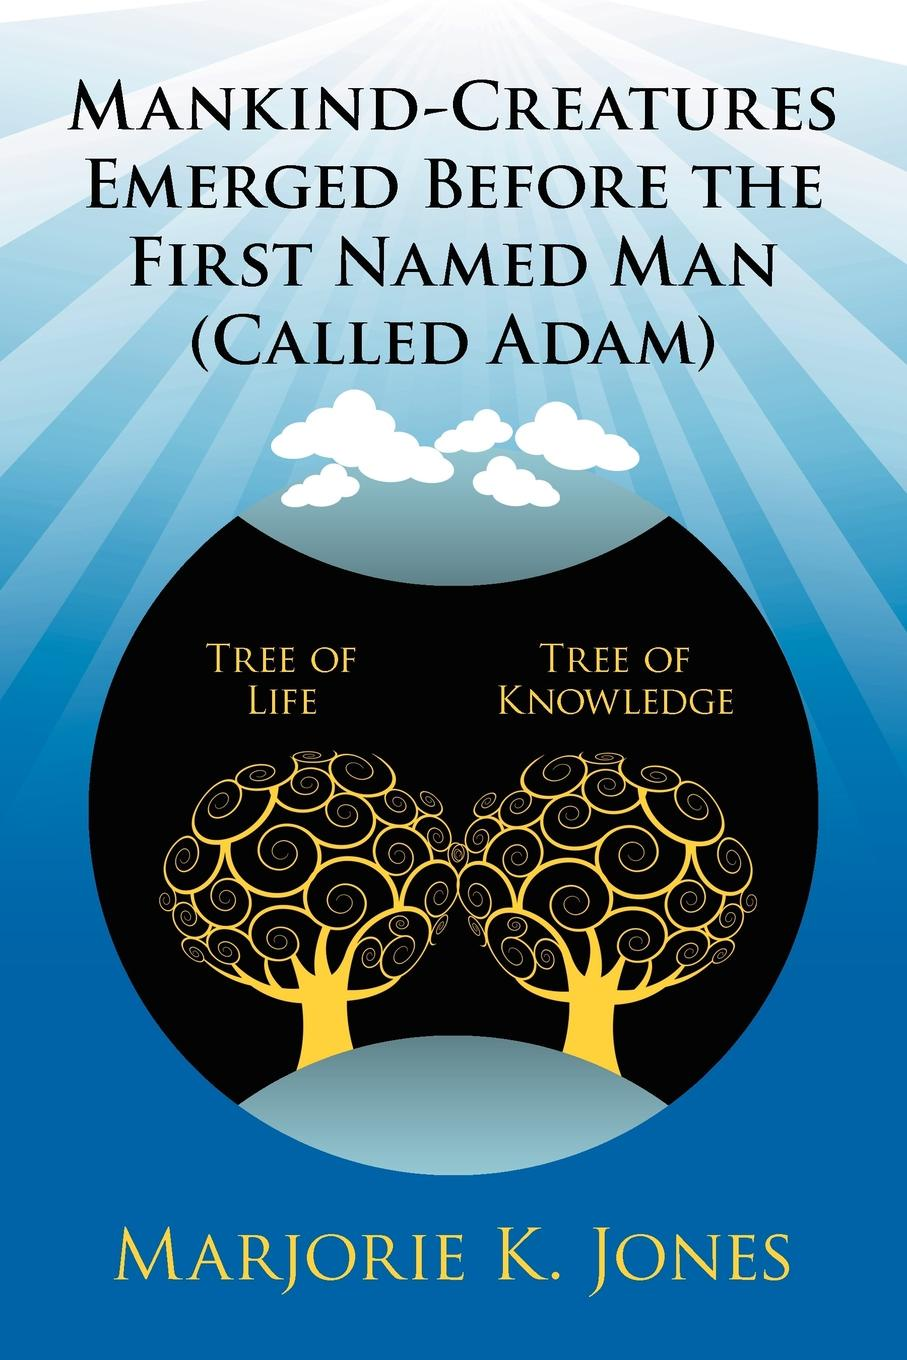 Marjorie K Jones Mankind-Creatures Emerged Before the First Named Man Called Adam